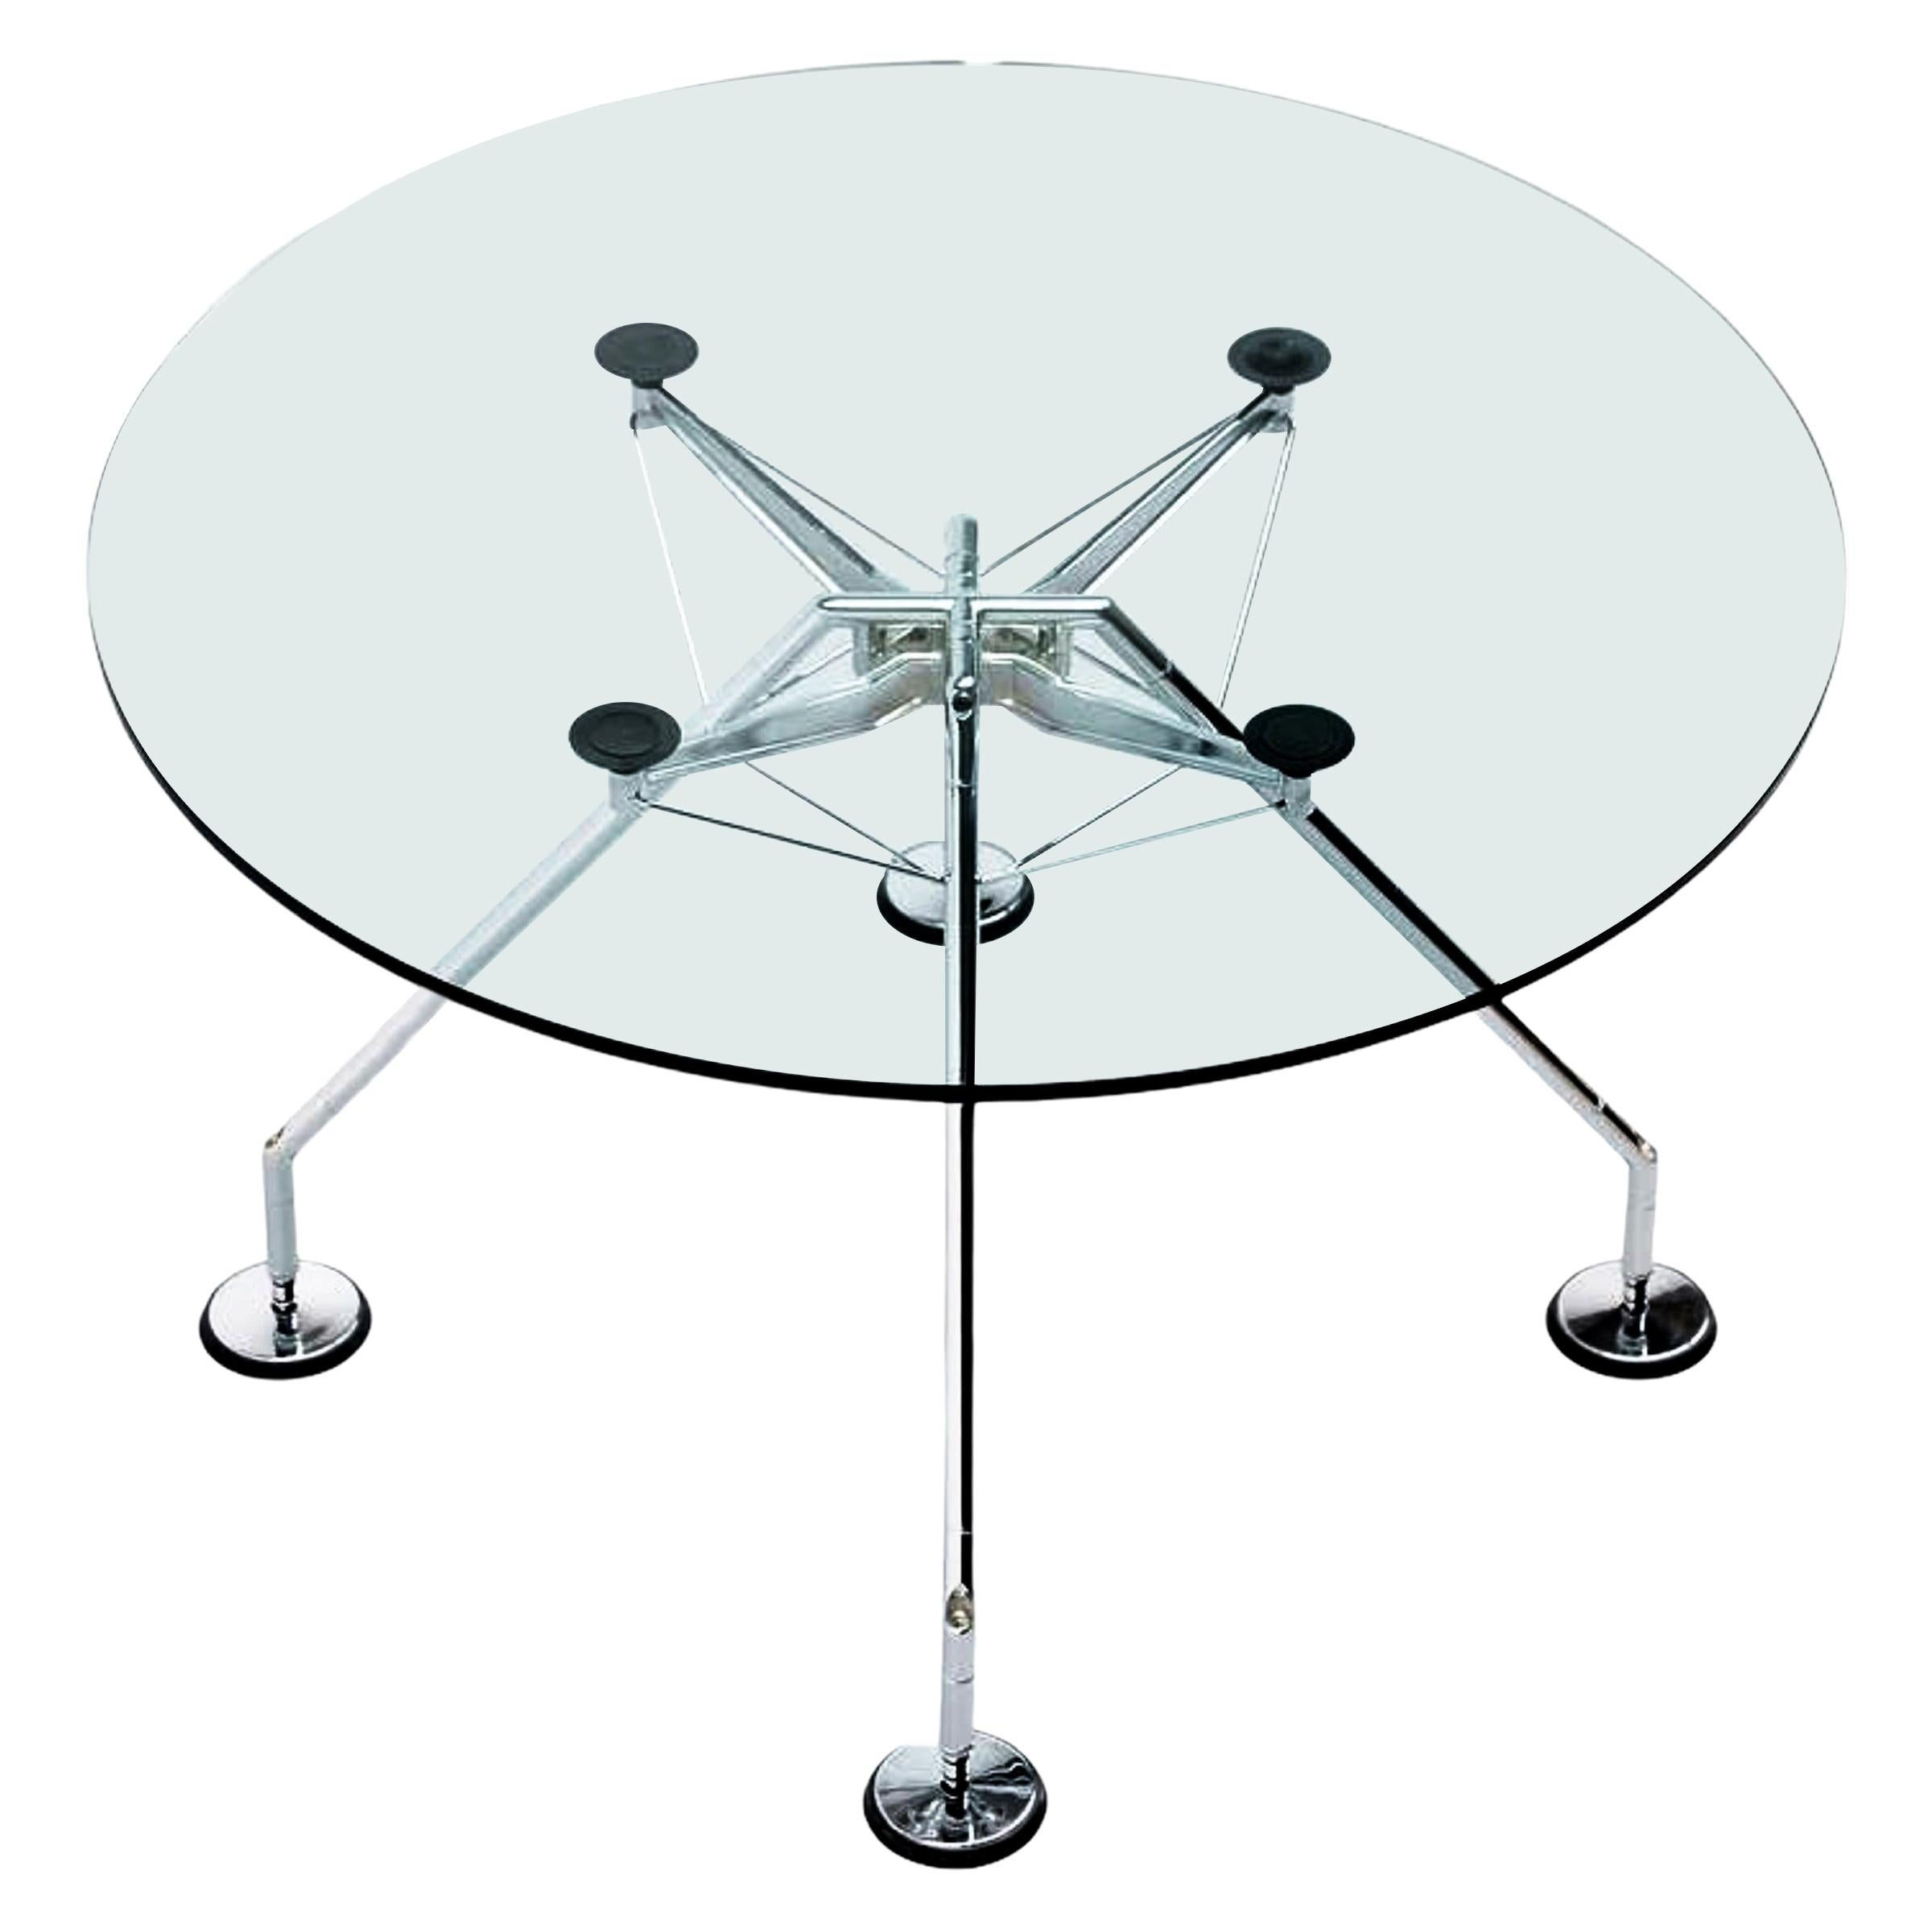 """Midcentury Norman Foster Round """"Nomos"""" Italian Dining Table for Tecno, 1987"""